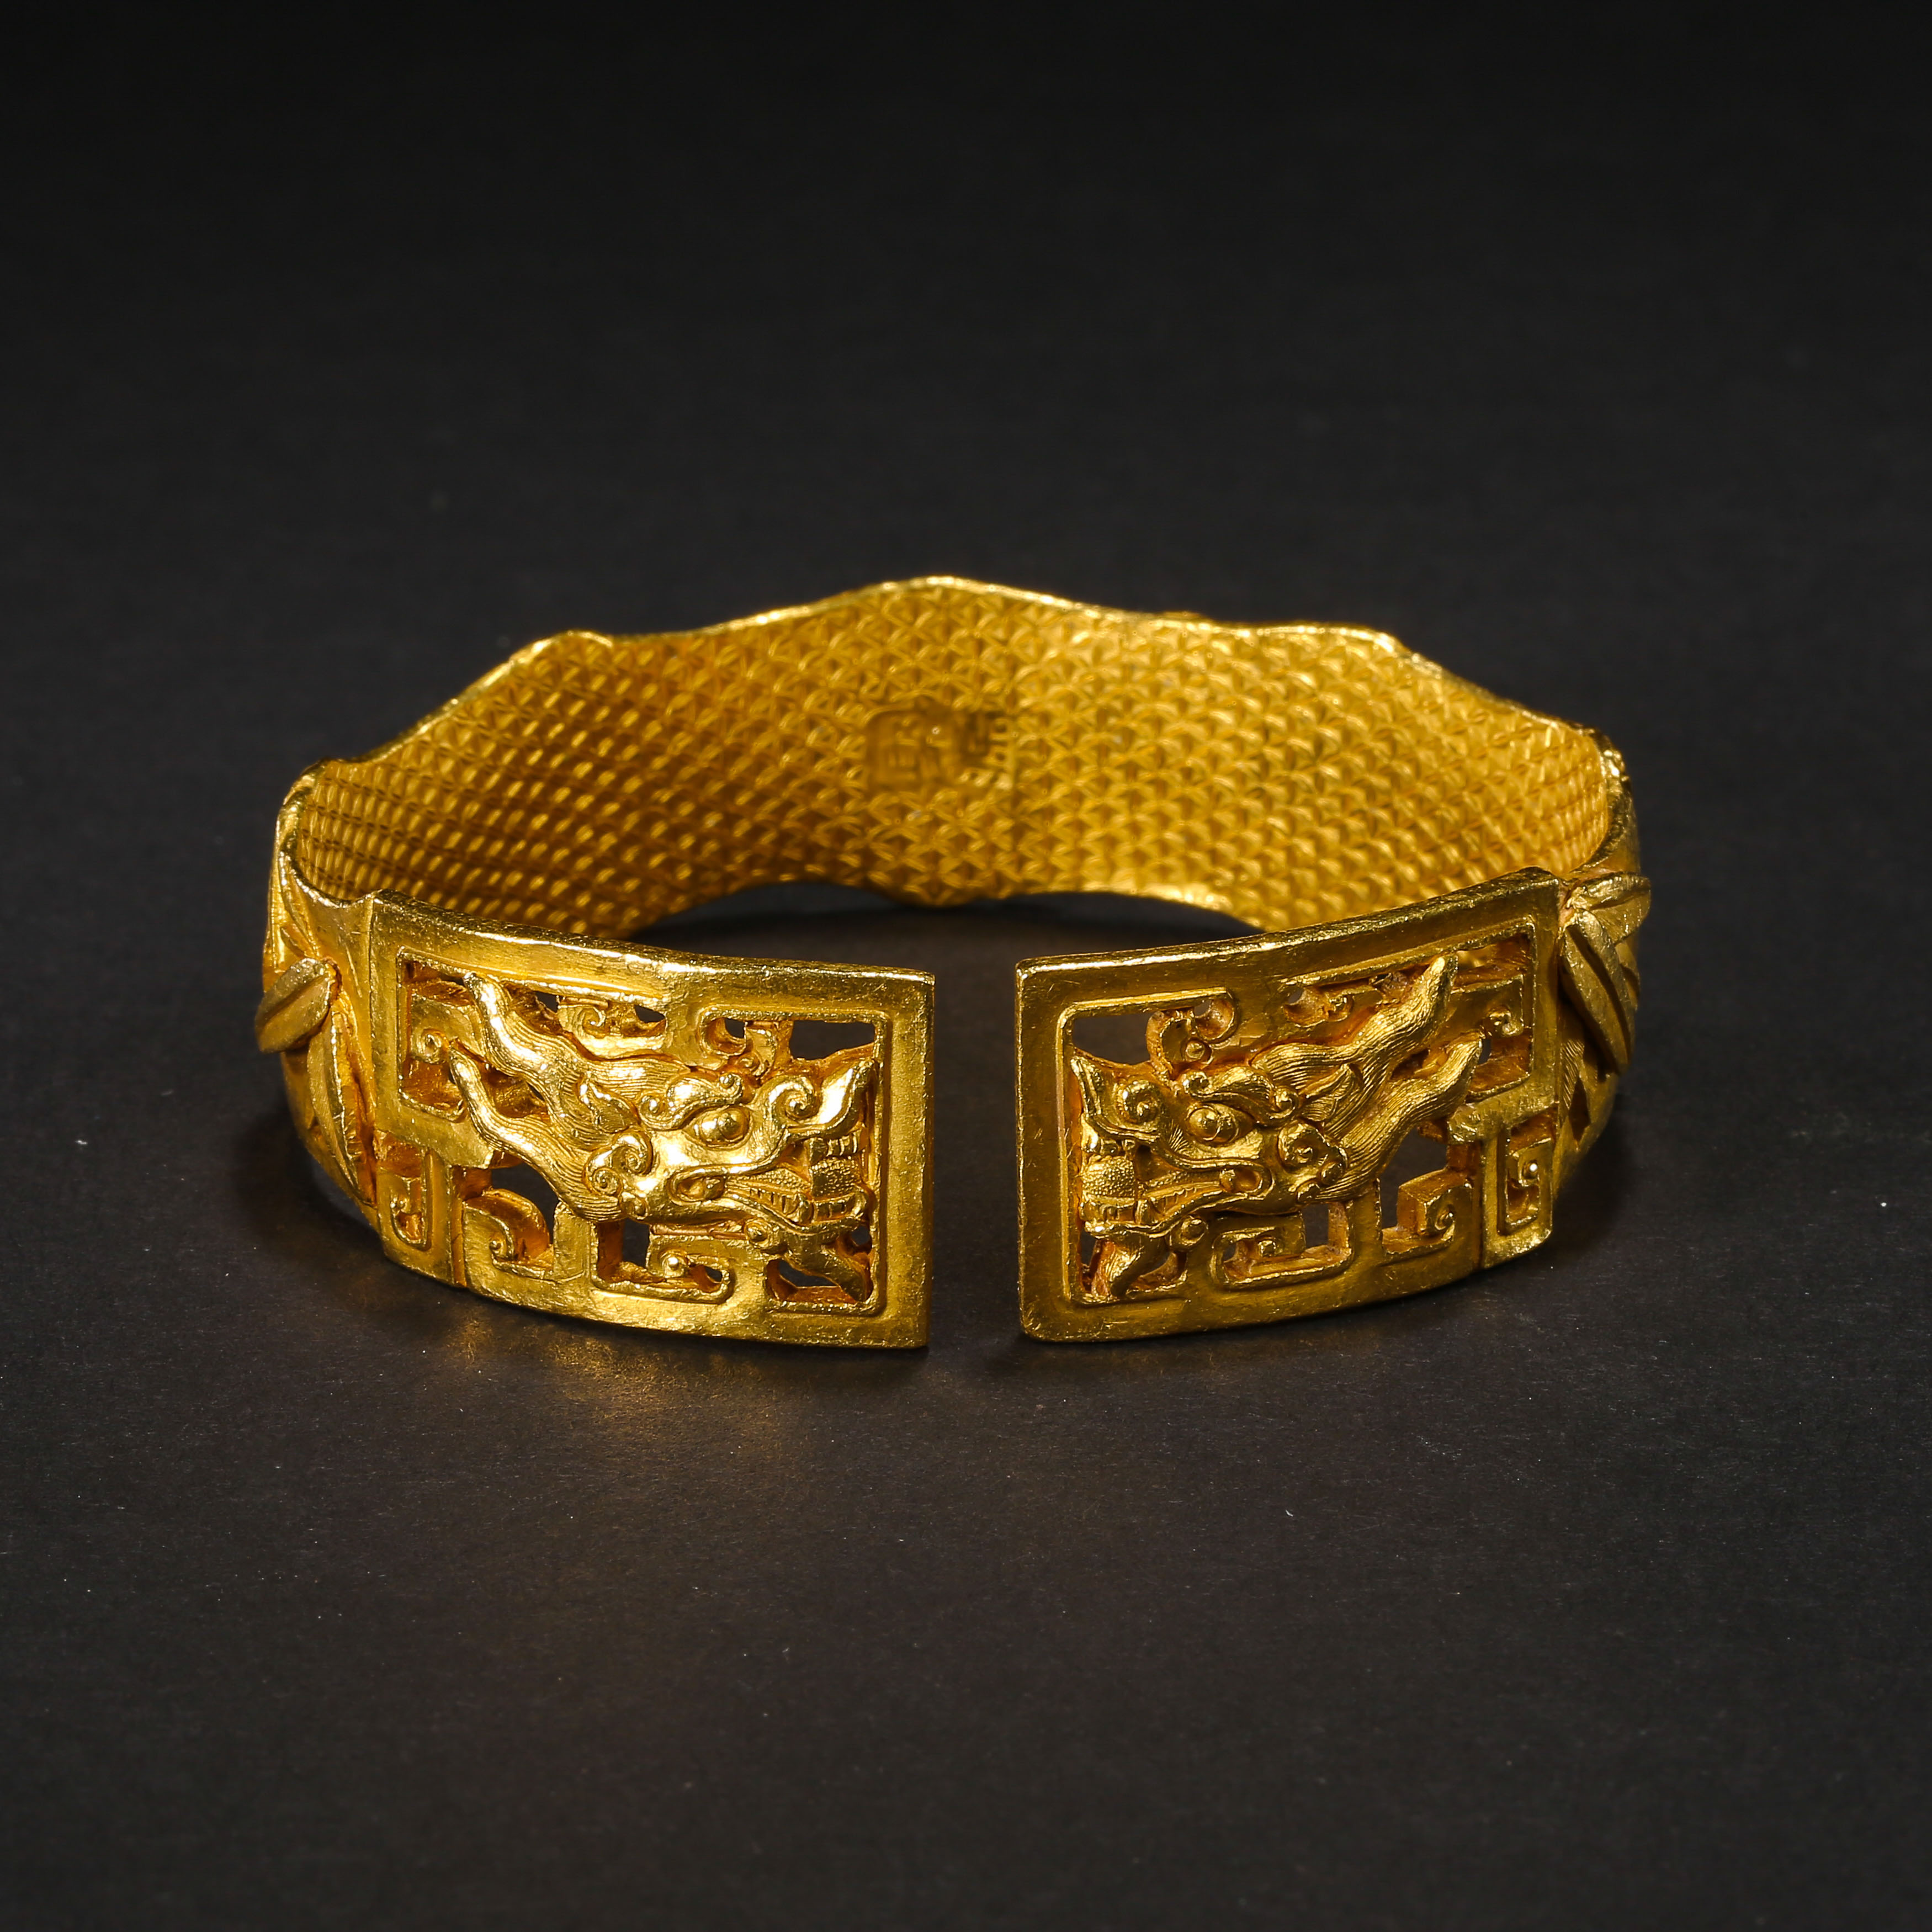 A PAIR OF PURE GOLD BRACELETS, QING DYNASTY, CHINA - Image 5 of 11